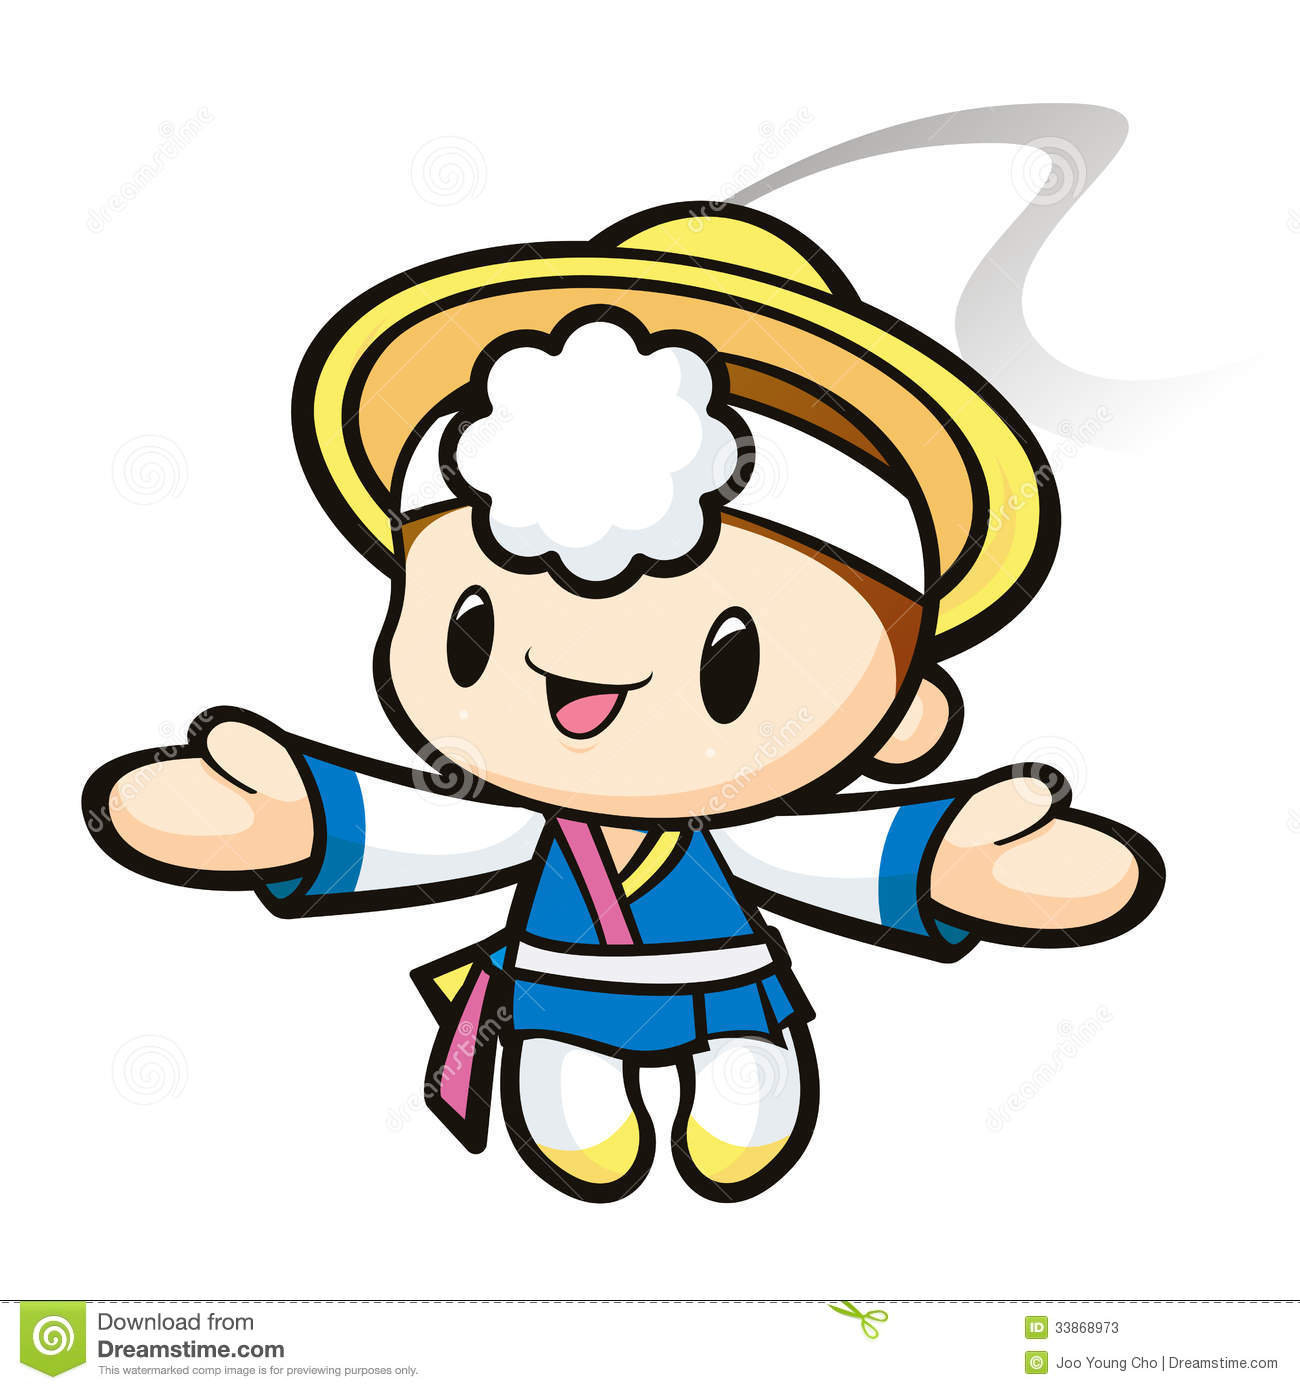 Korean character for soul clipart.